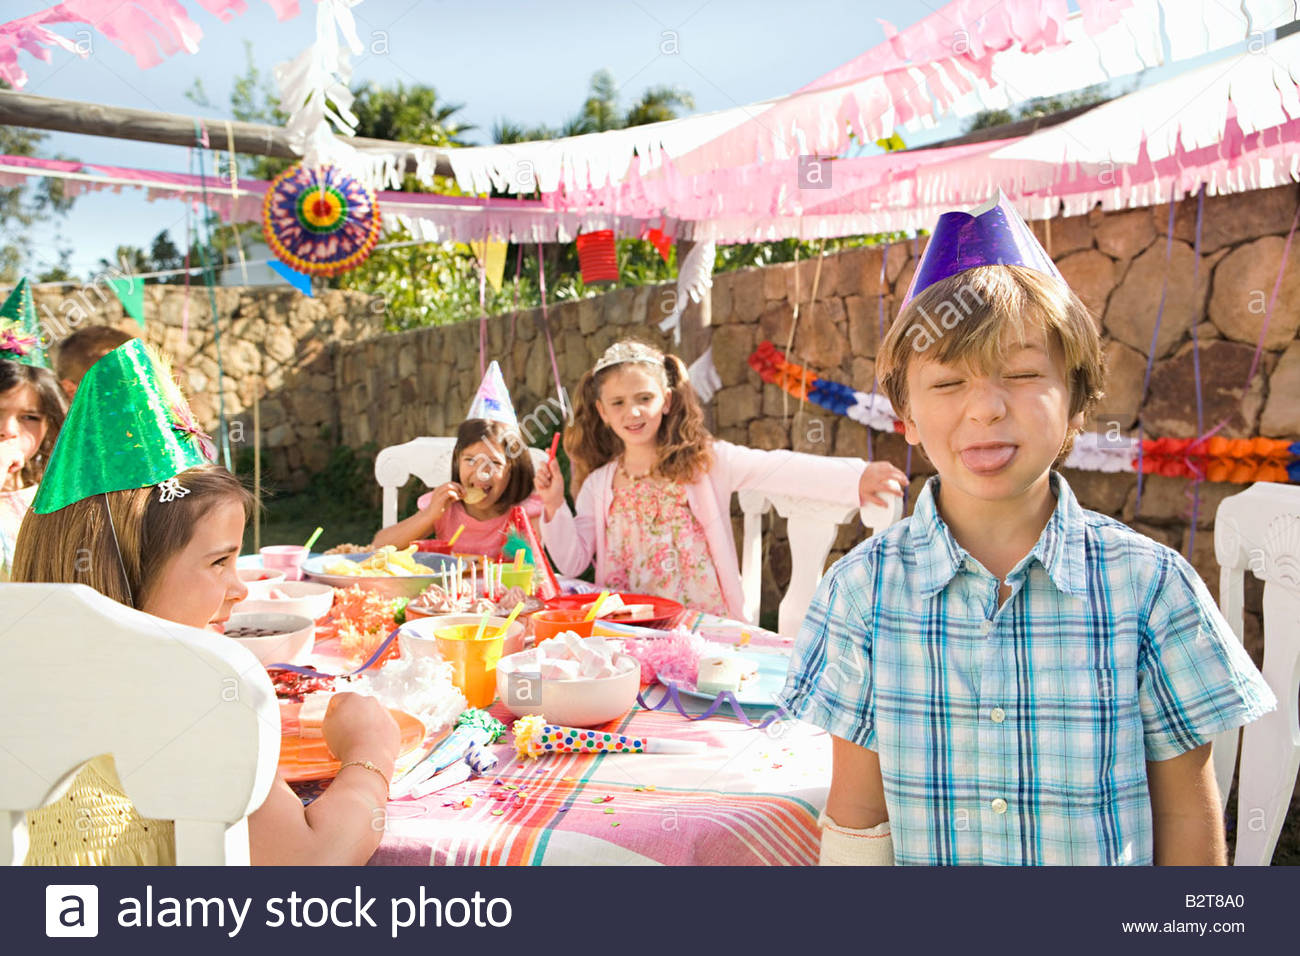 Mischievous young boy at birthday party - Stock Image